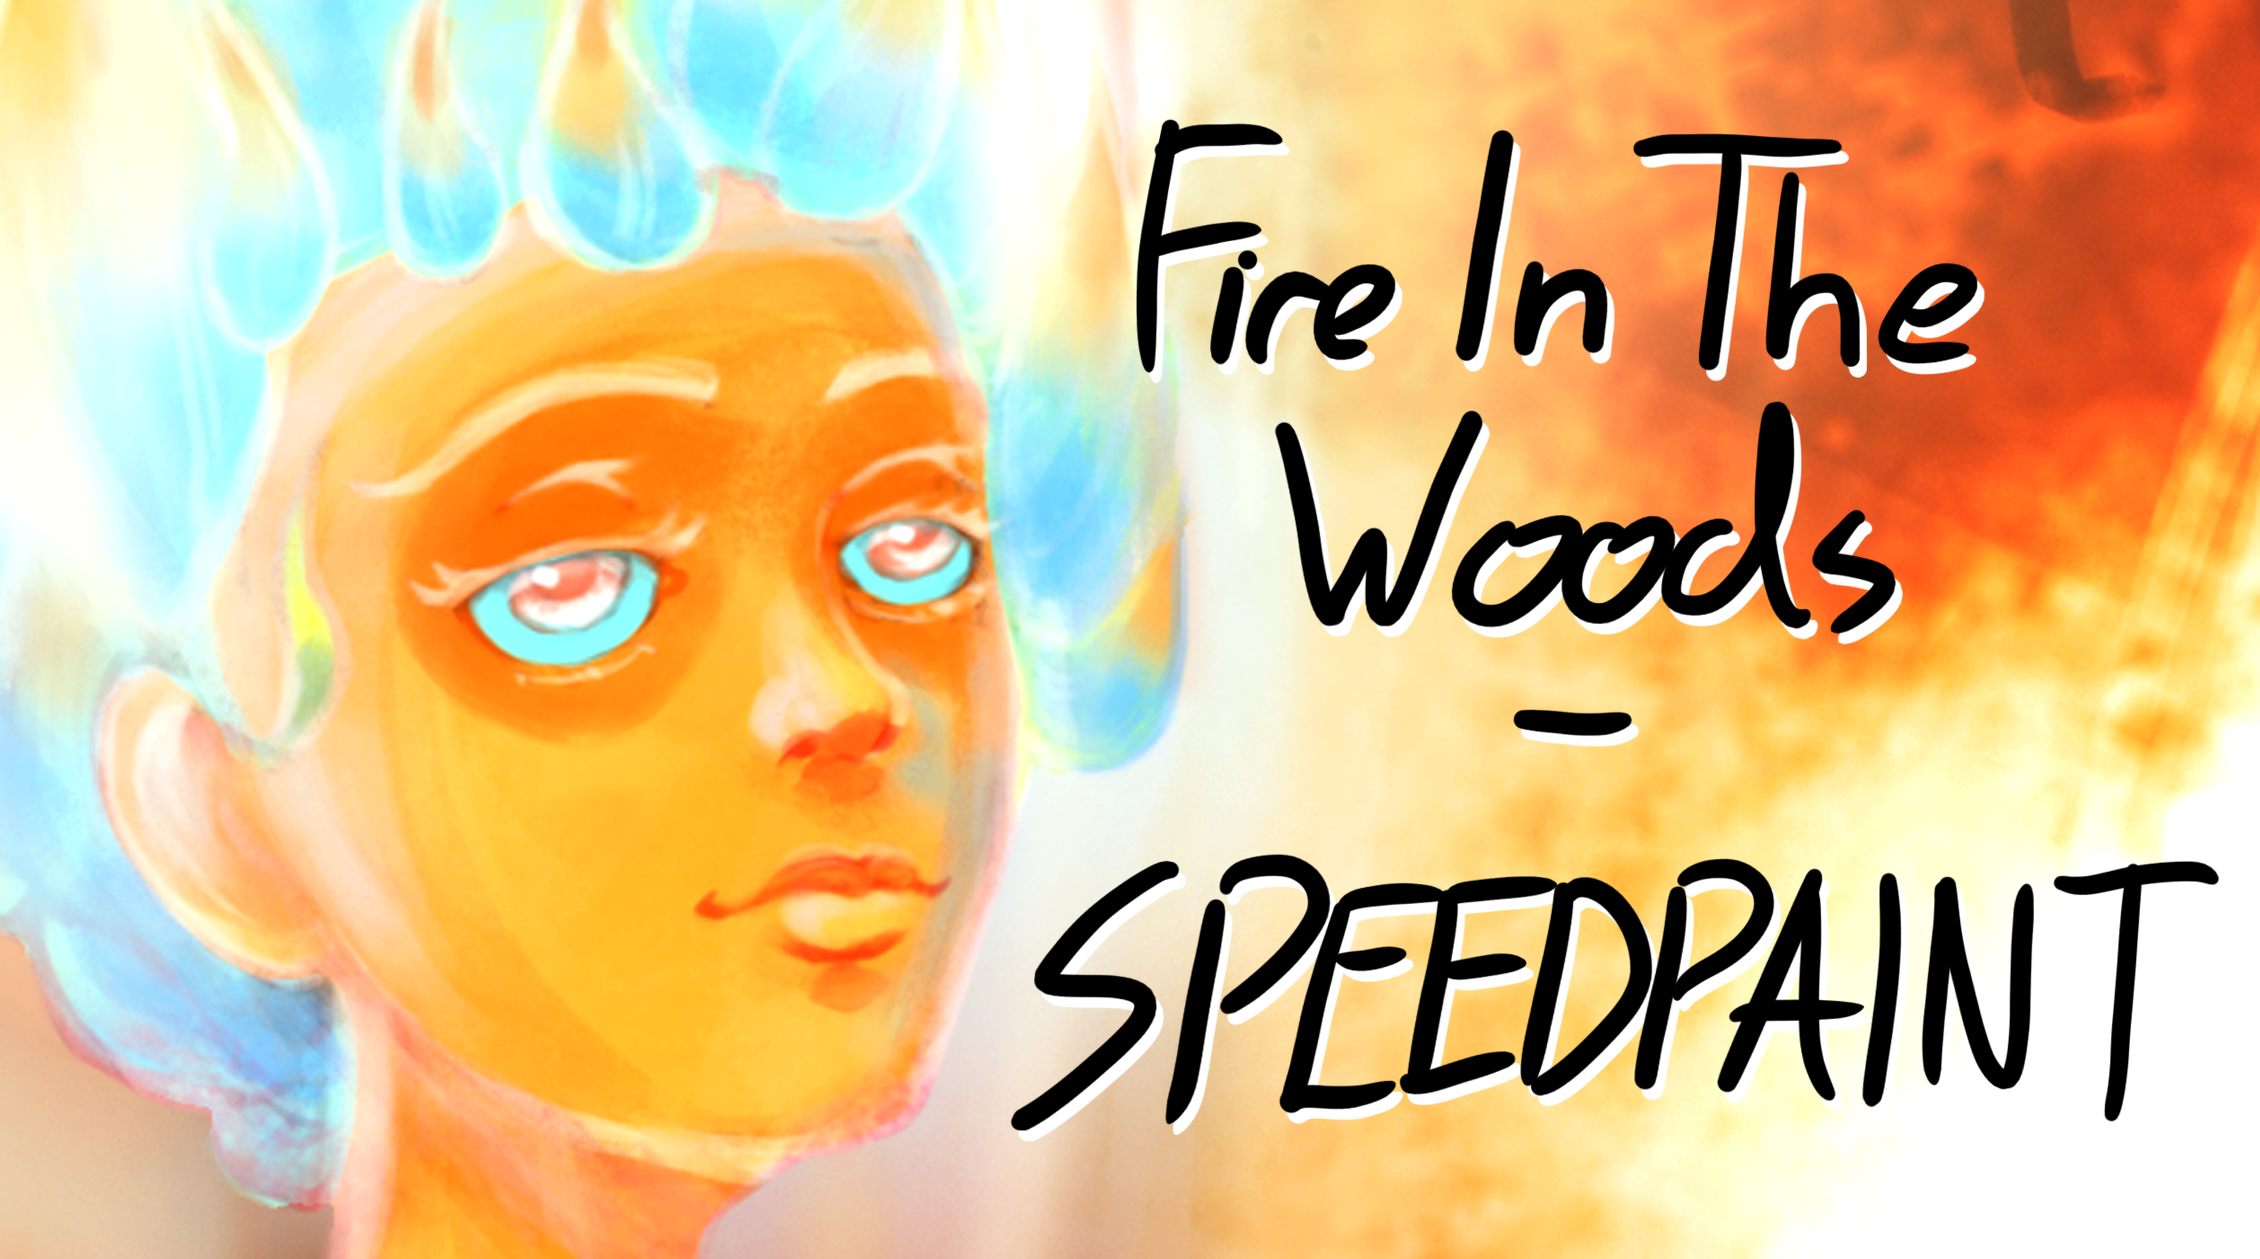 3722201_149216546151_fireinthewoods-YT-icon.png